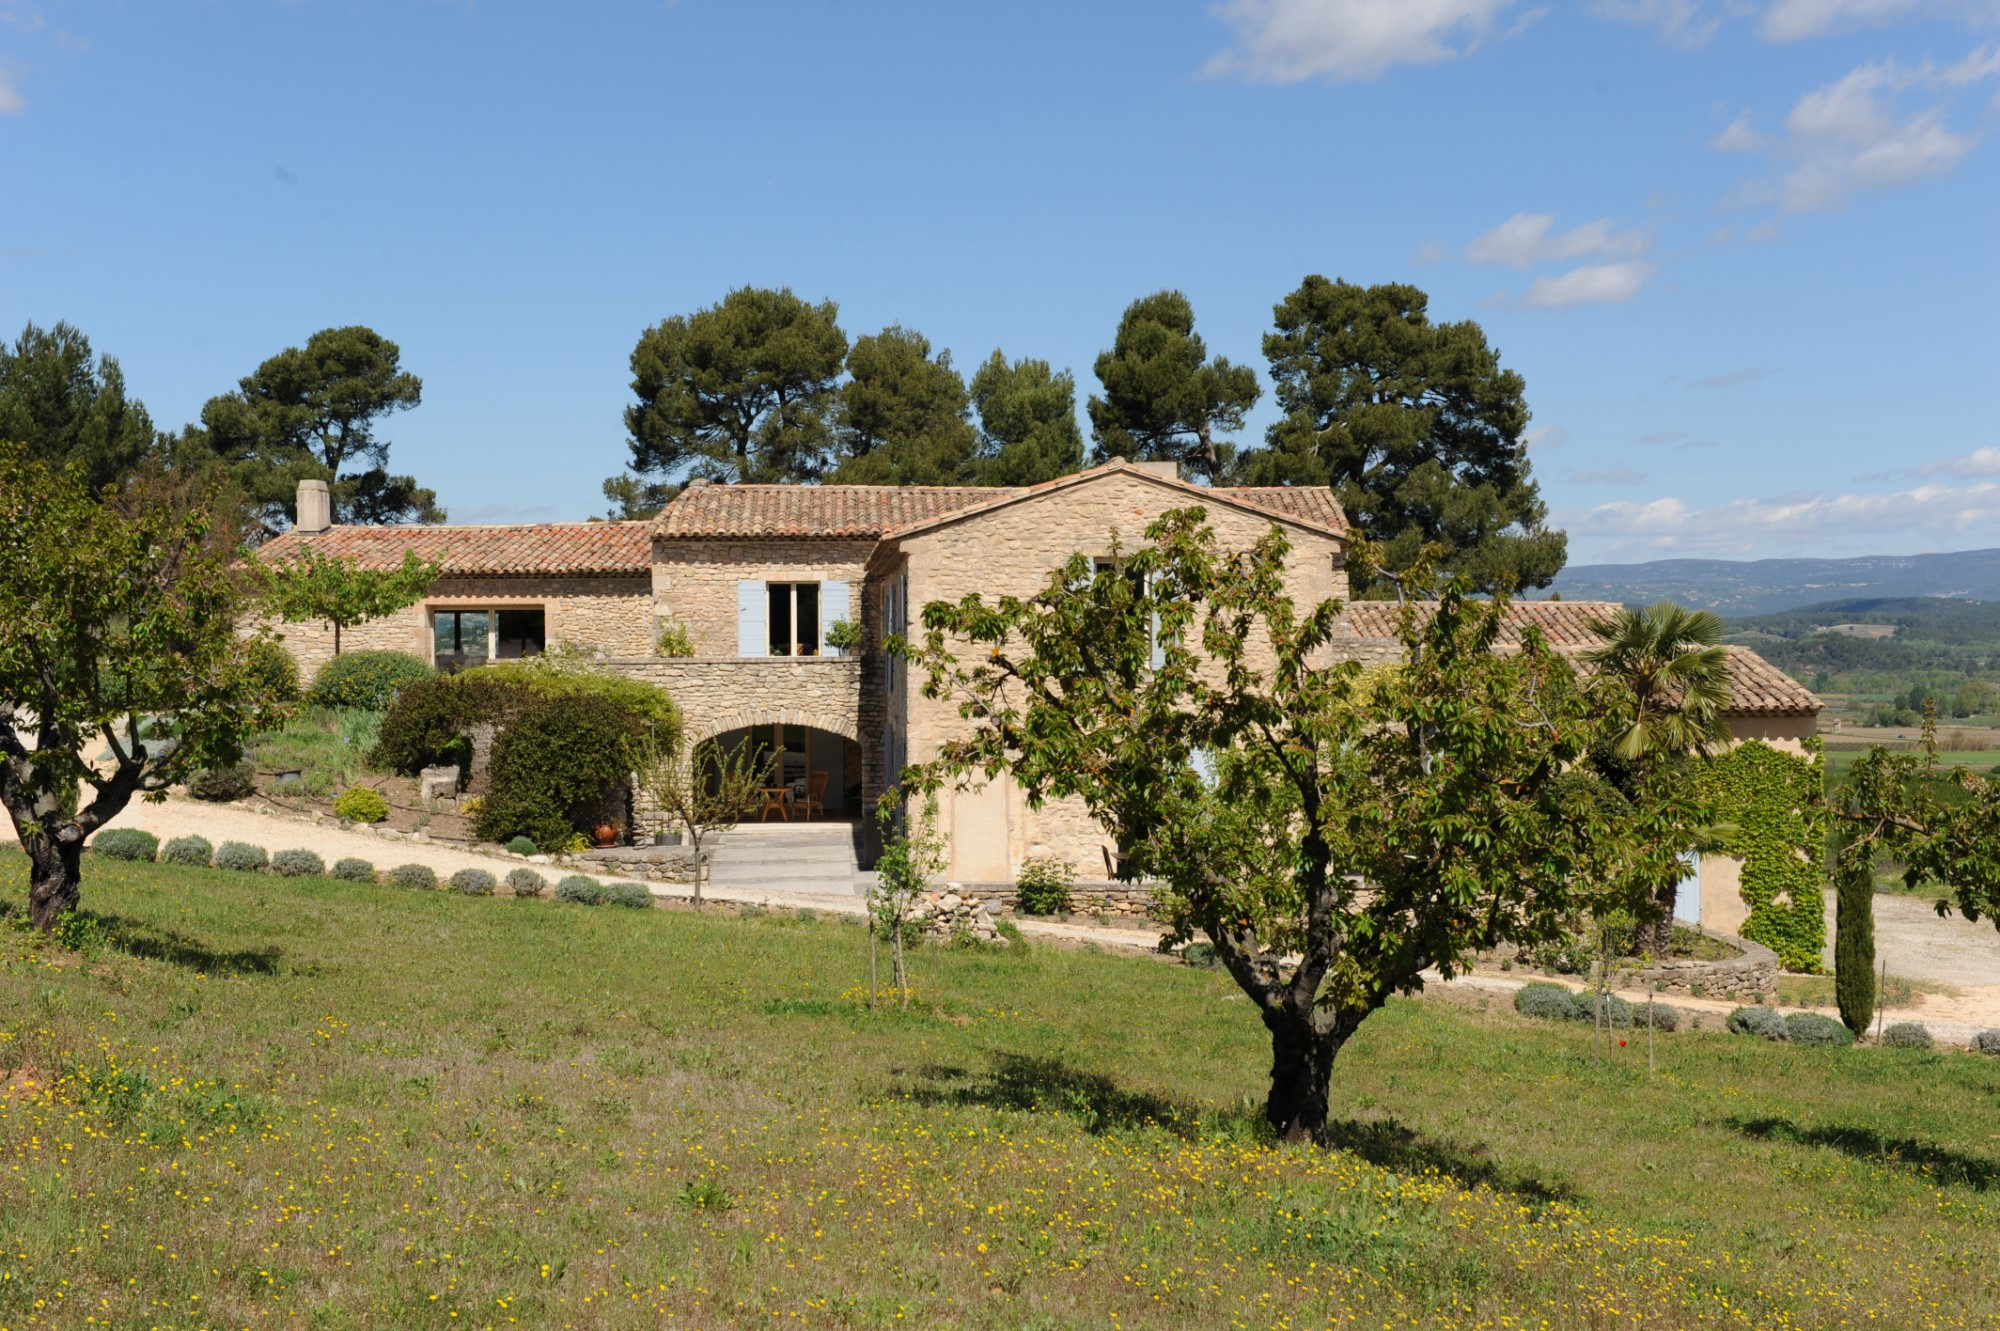 Luxury Real Estate Provence In The Heart Of Golden Triangle Luberon For Sale Stone Farmhouse Approximately 700 Sqm Located On A Plot Over